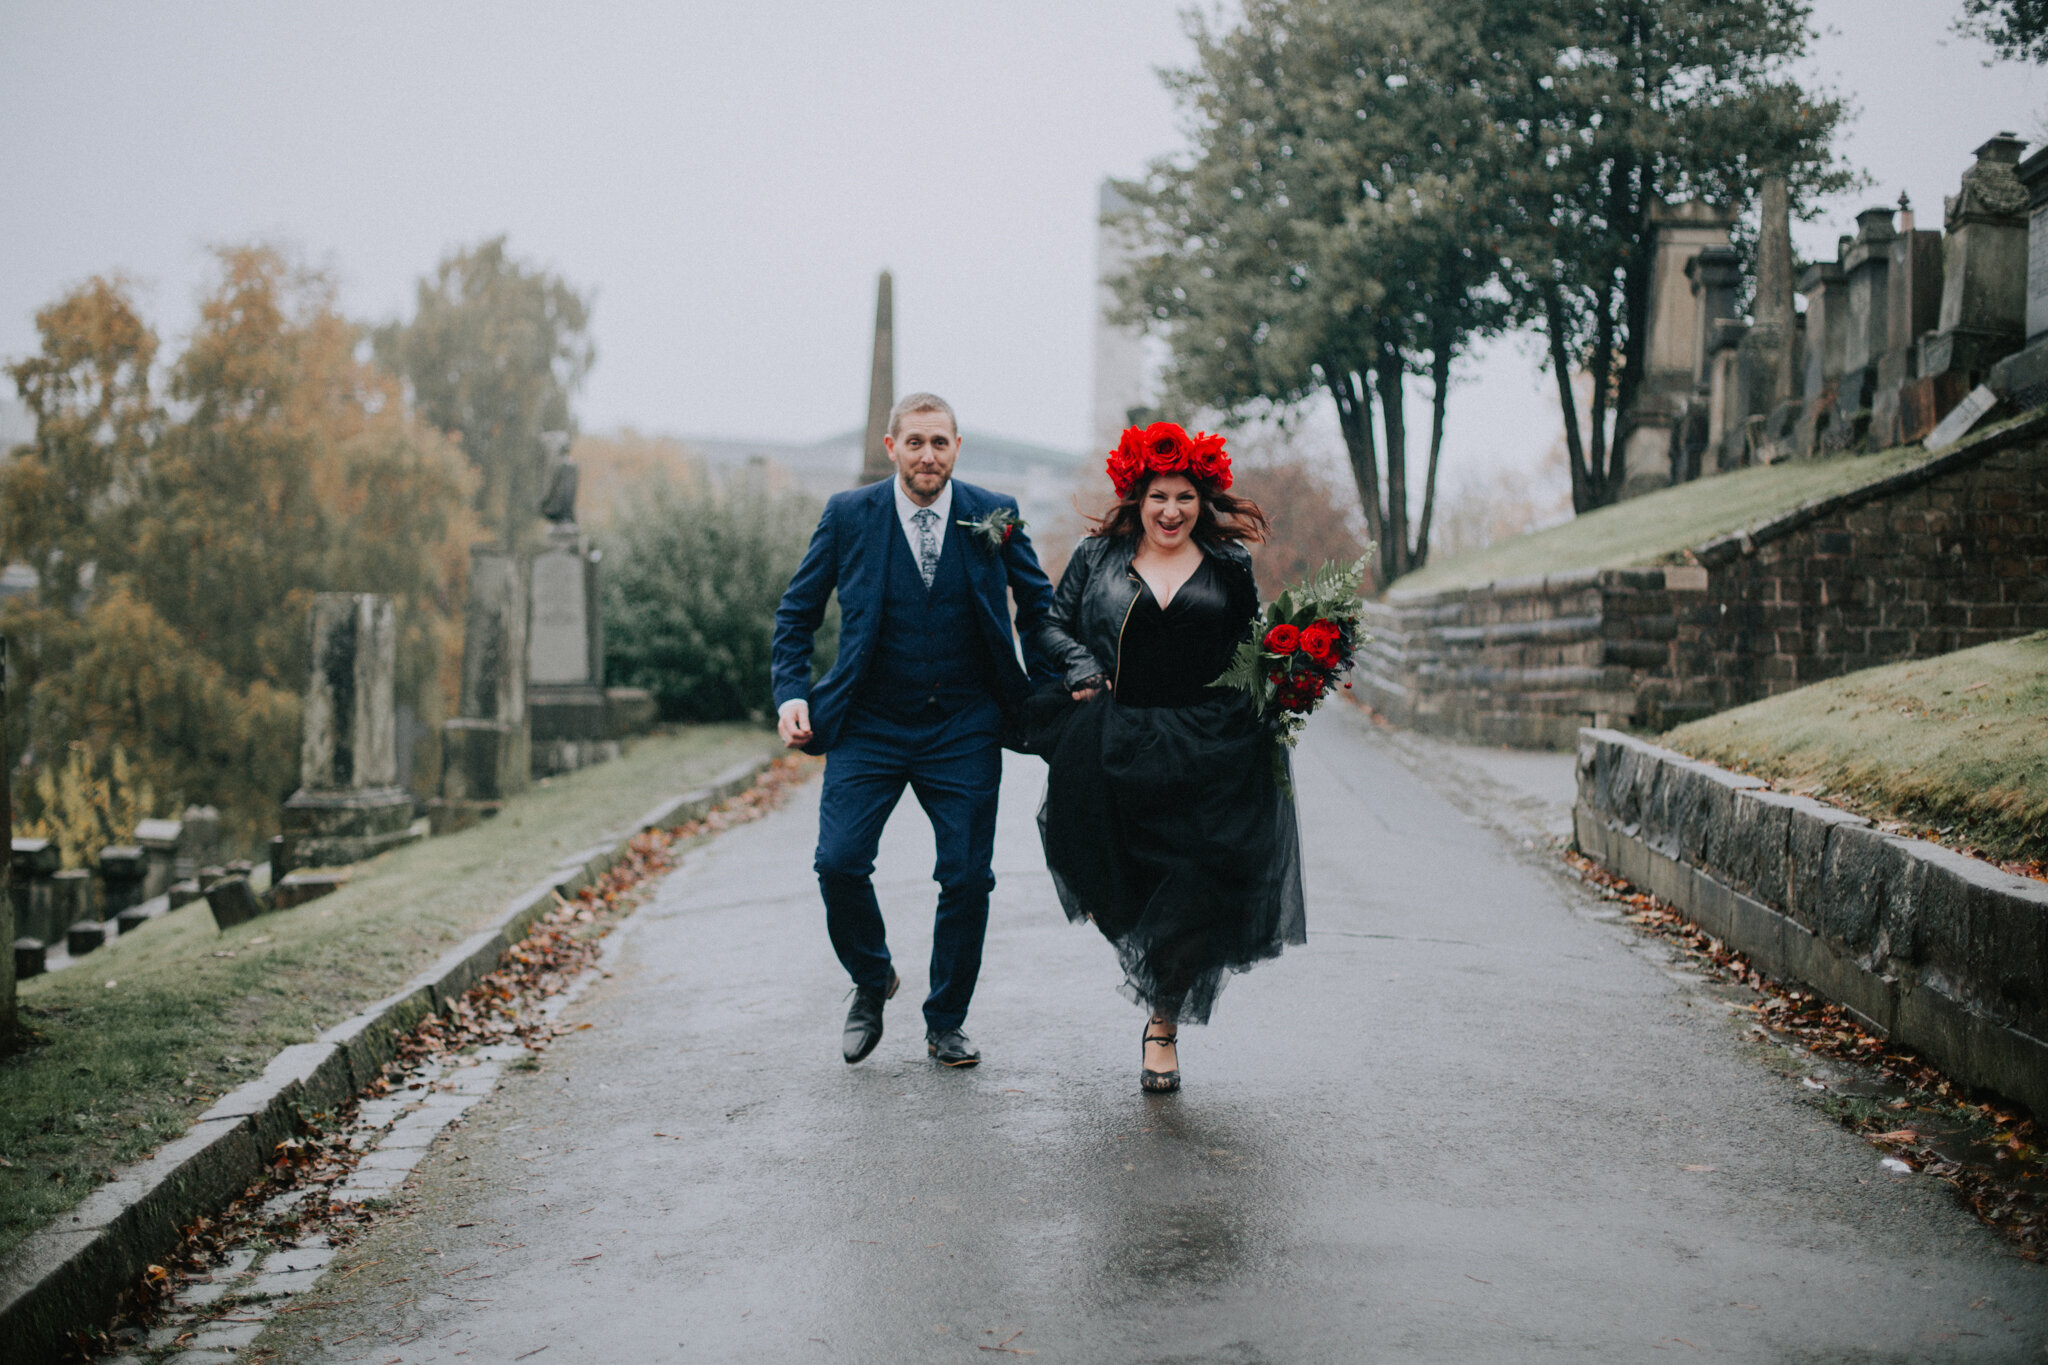 The couple is running at the Glasgow Cathedral graveyard